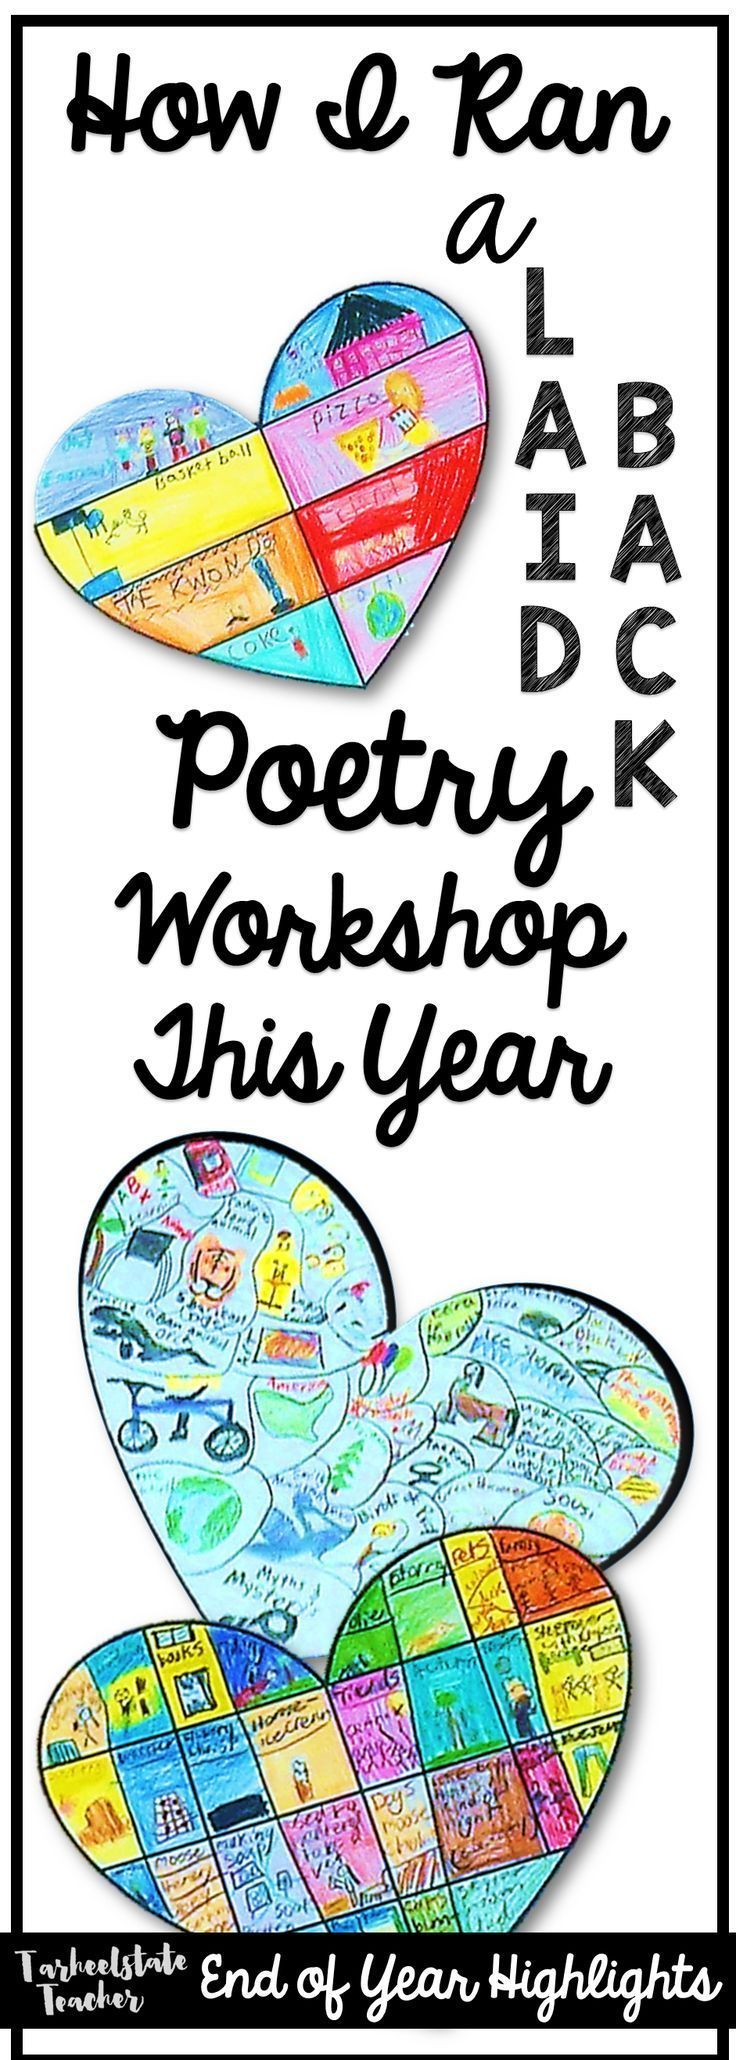 Poetry Workshop in 4th Grades, 5th Grades: How to run a laid back, meaningful poetry workshop in the uppergrades elementary classroom; poetry workshop ideas; reading and writing workshop